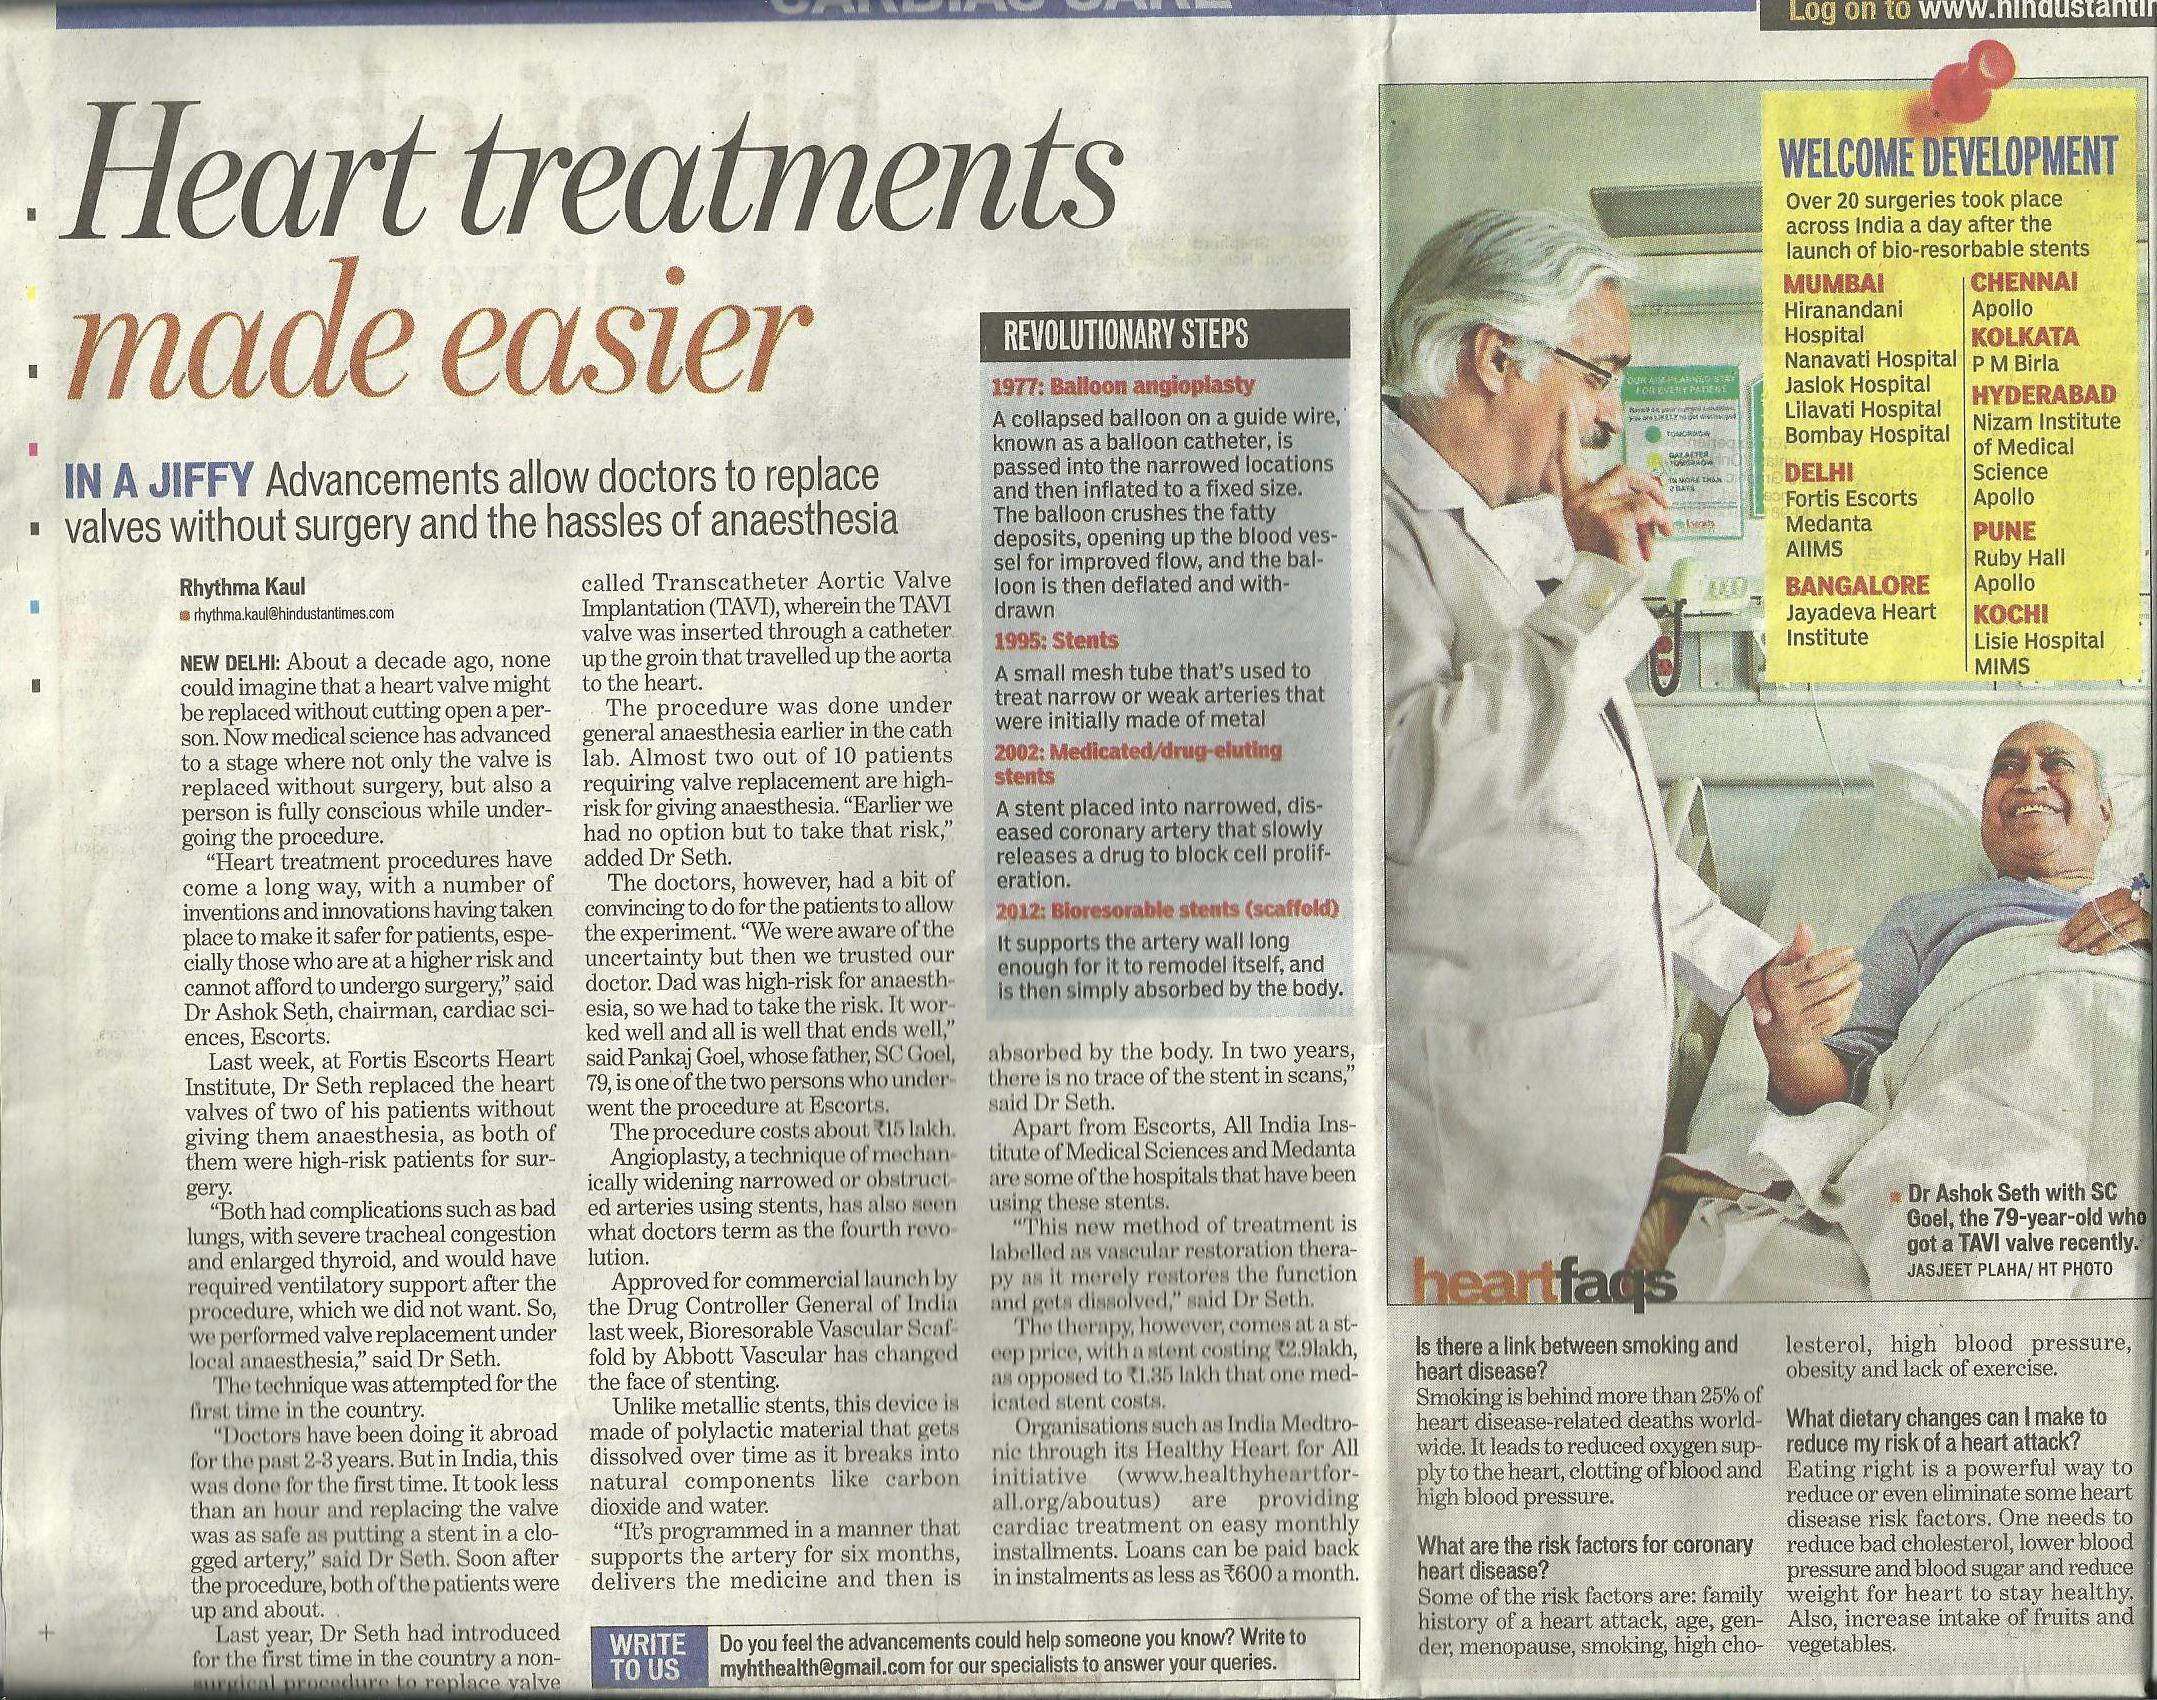 Heart treatments made easier